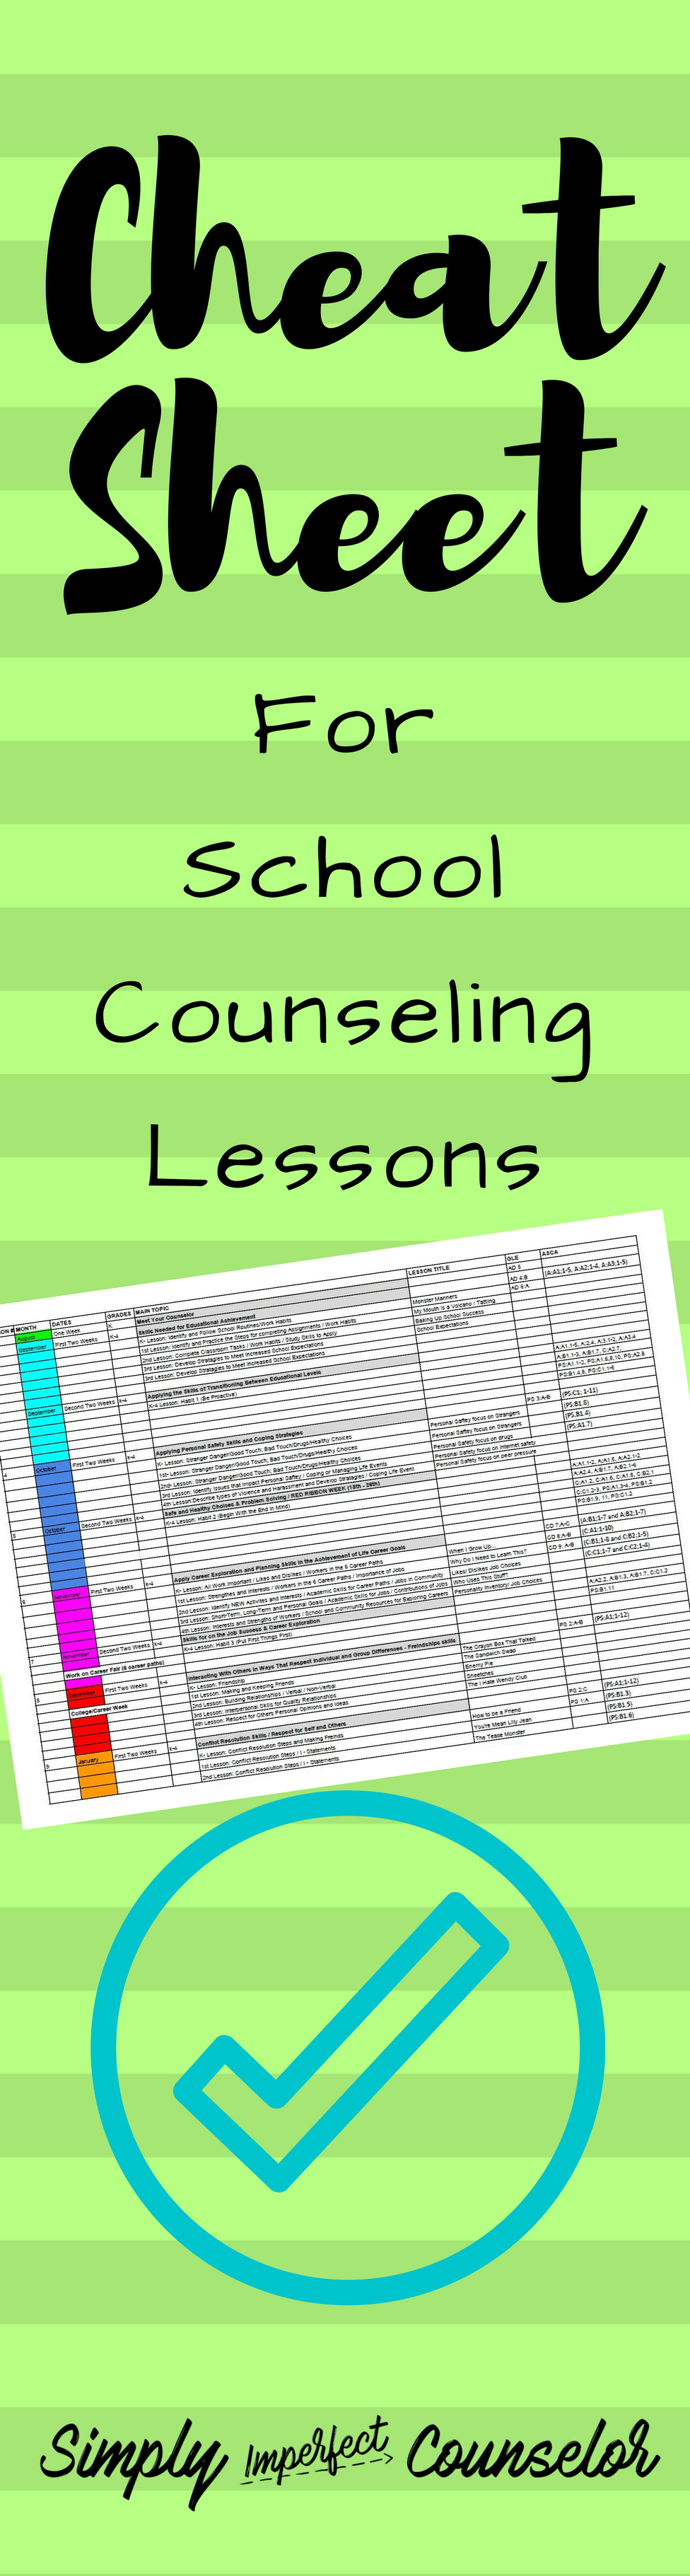 Cheat Sheet for School Counseling Lessons - Entire Elementary Planning [ 3642 x 976 Pixel ]